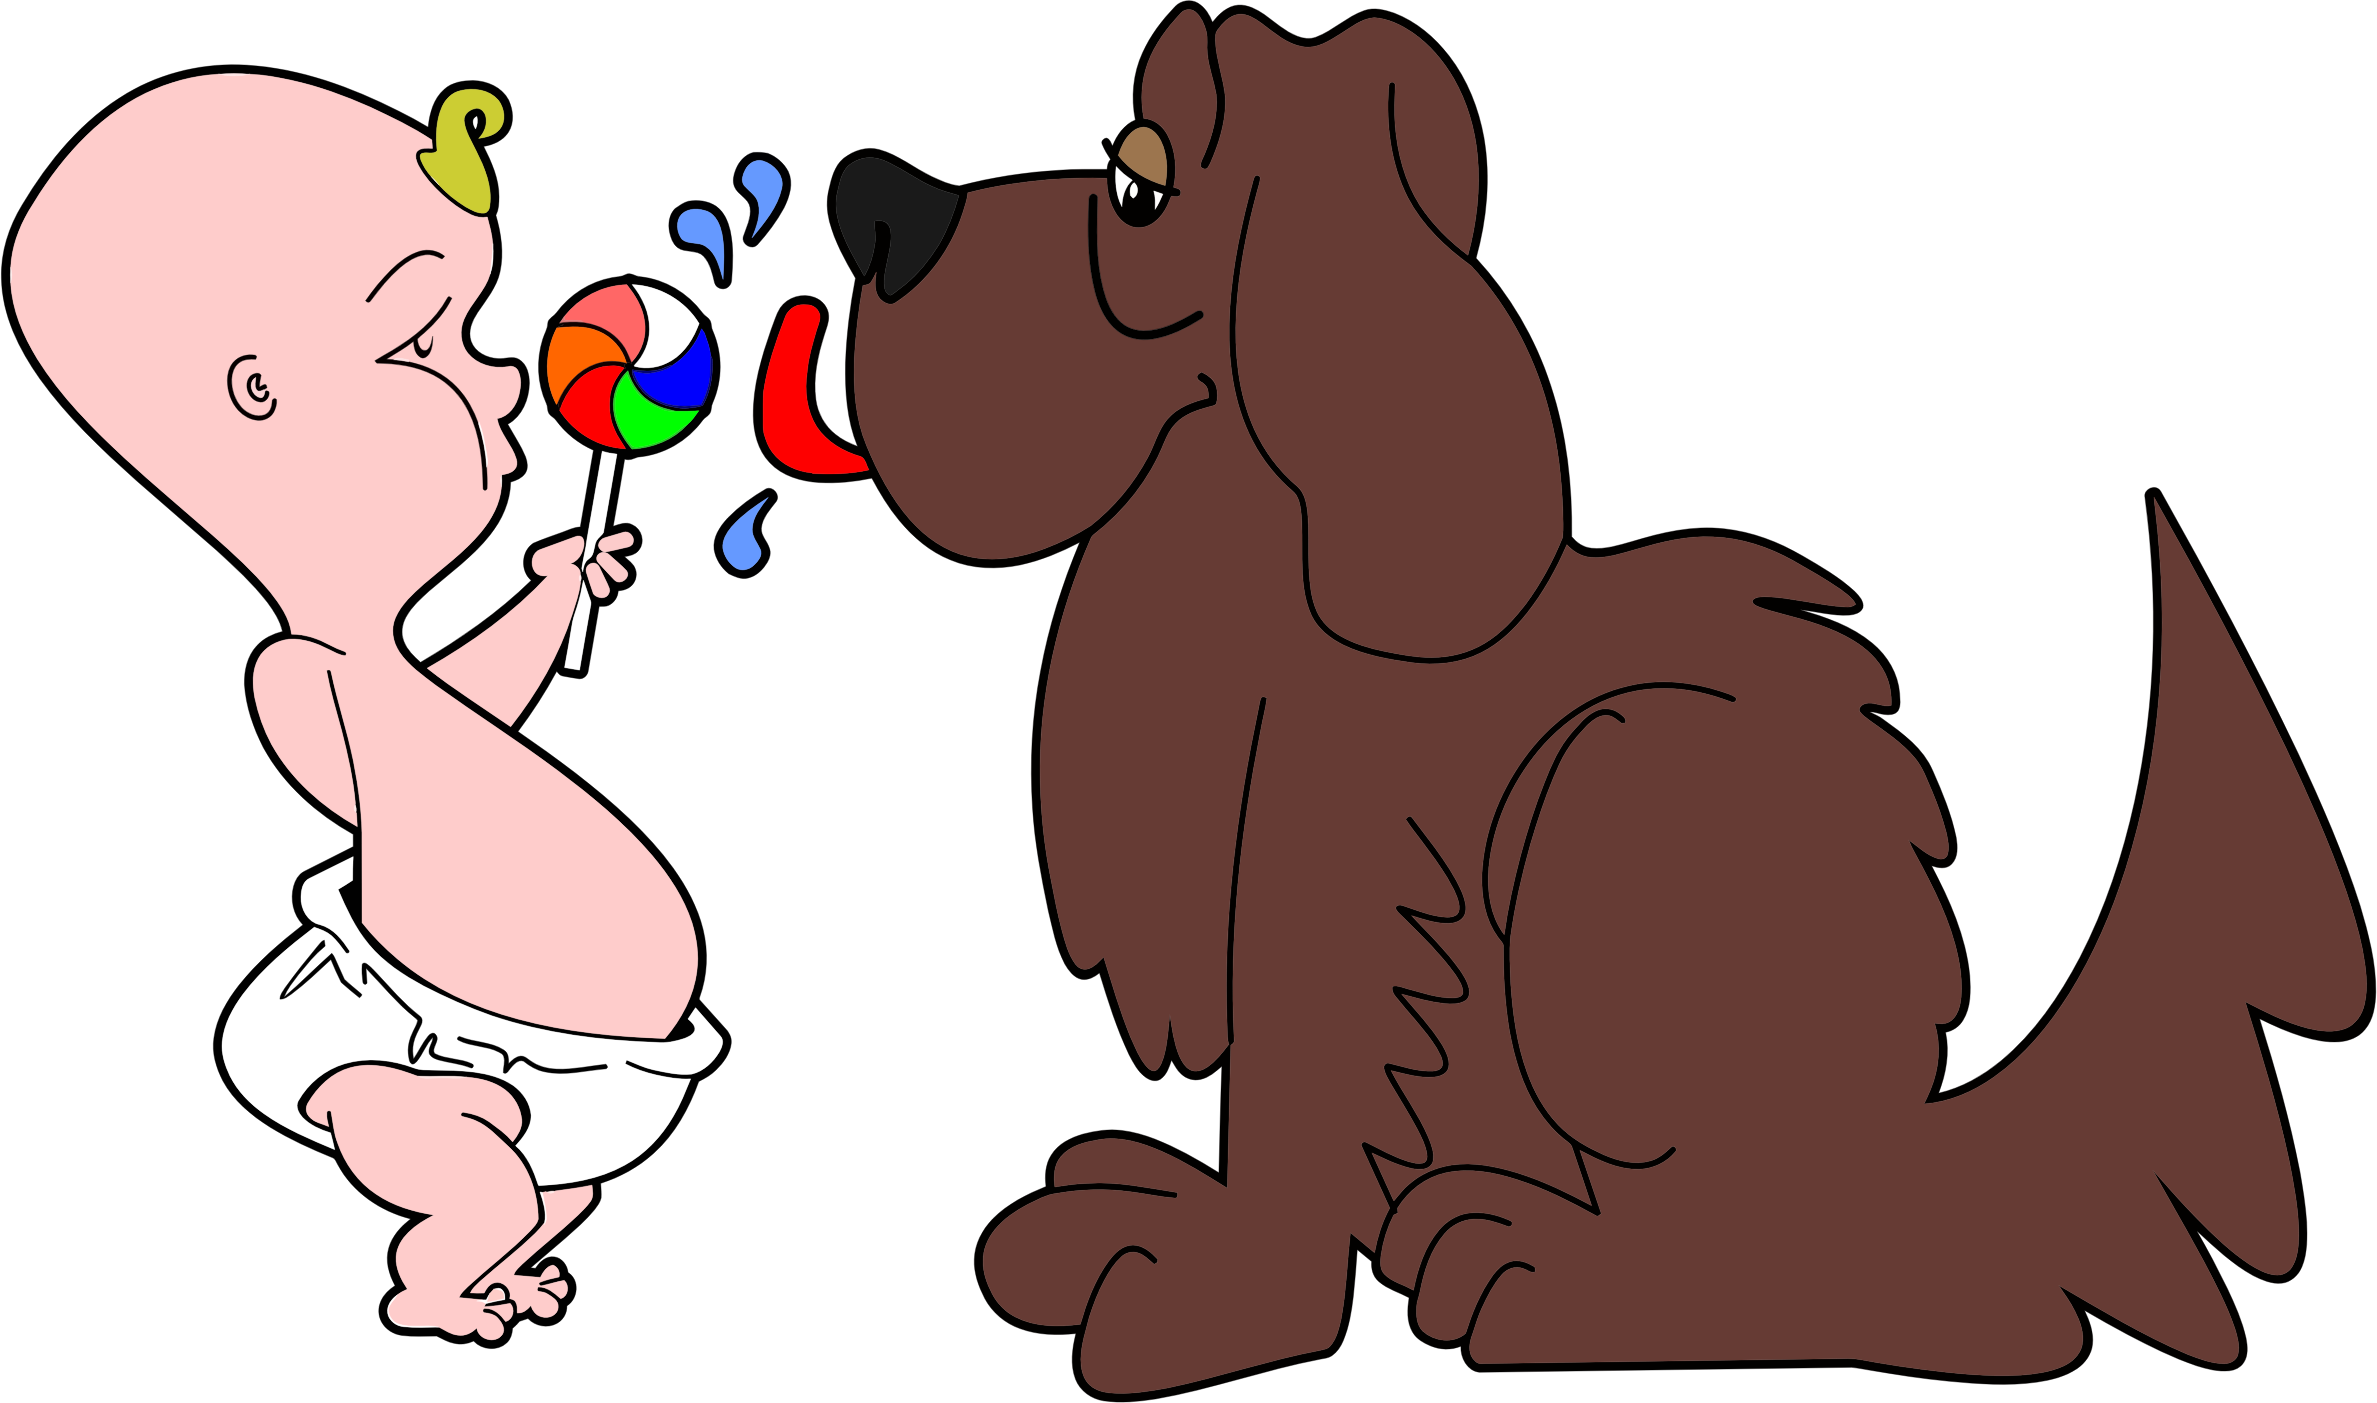 Lollipop clipart small. Dog licking babys big